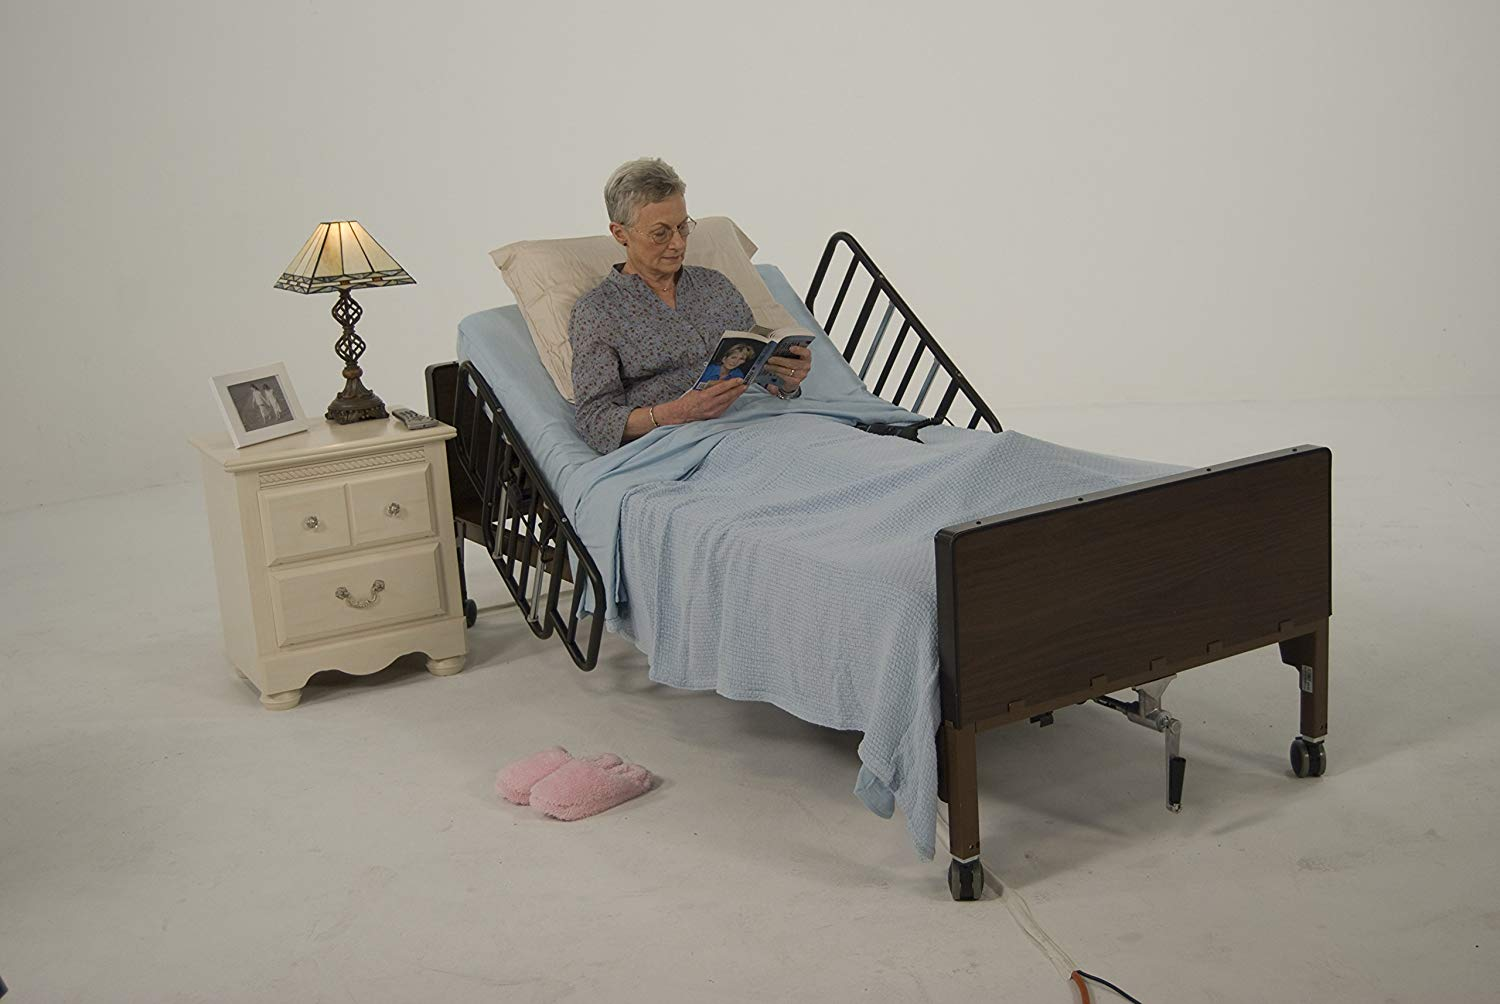 Full Electric Hospital Bed Rentals In Atlanta Call Now